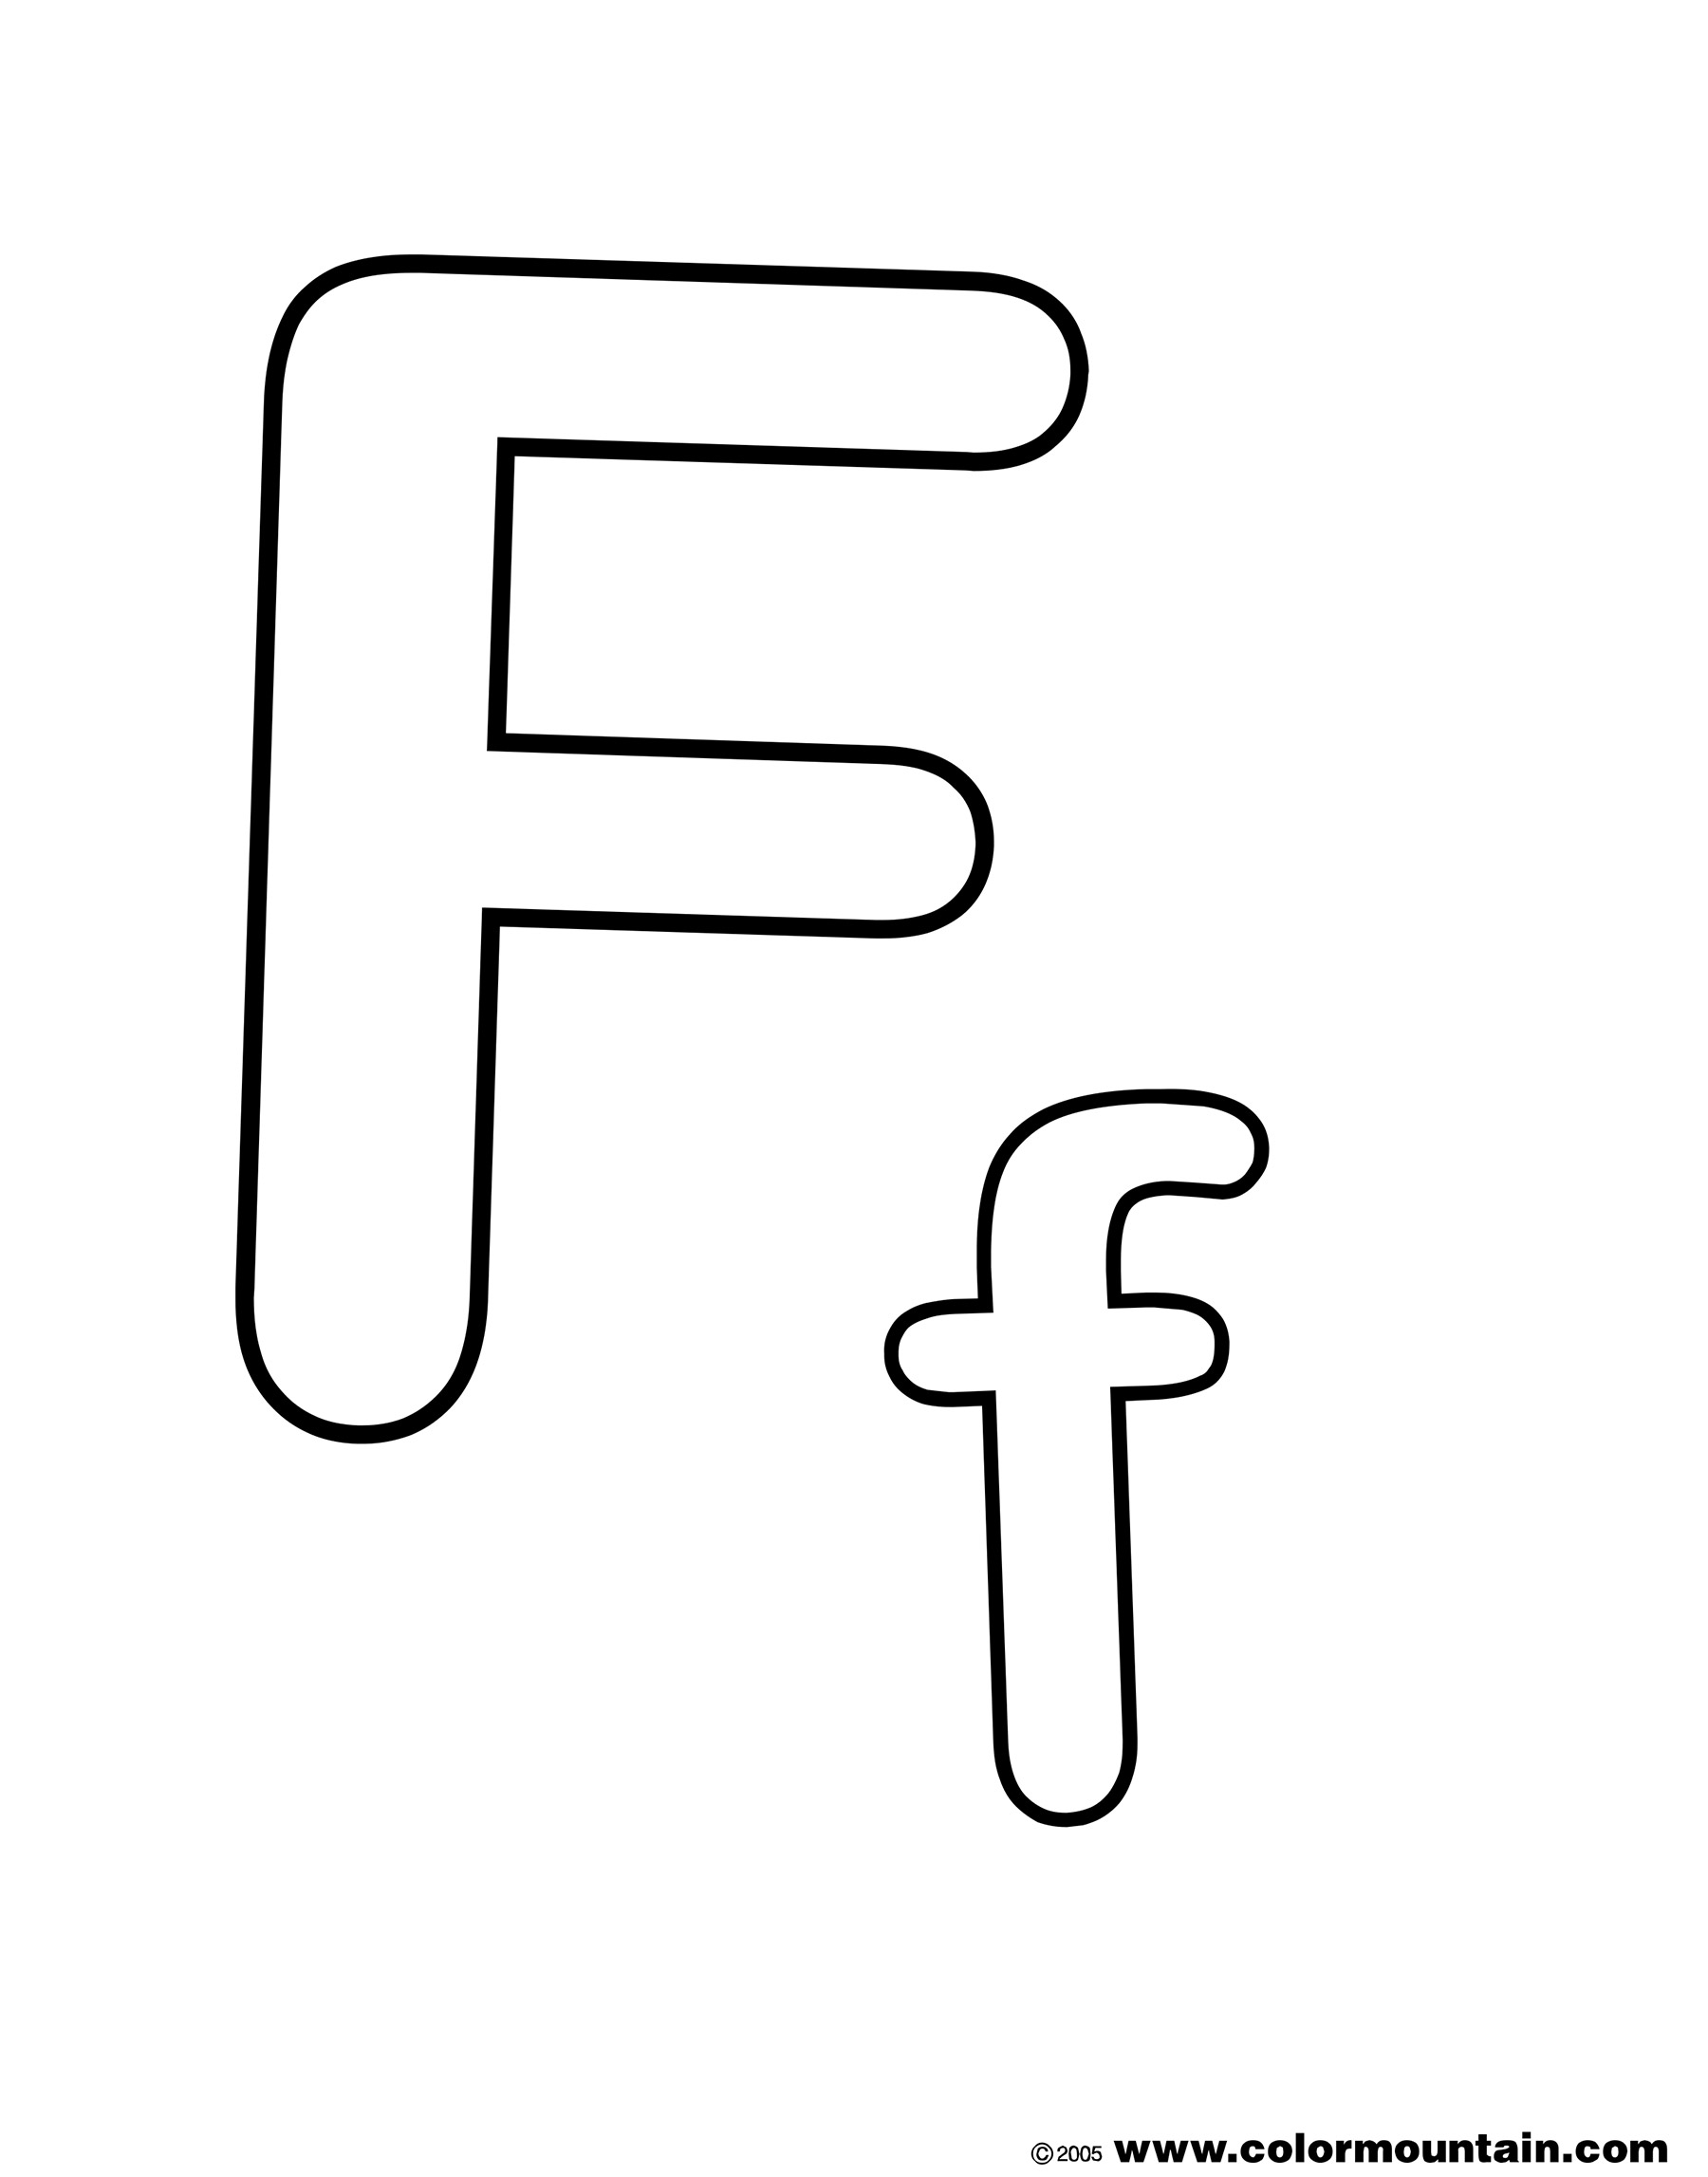 letter f for coloring preschool alphabet coloring pages free numbers pokemon coloring f for letter